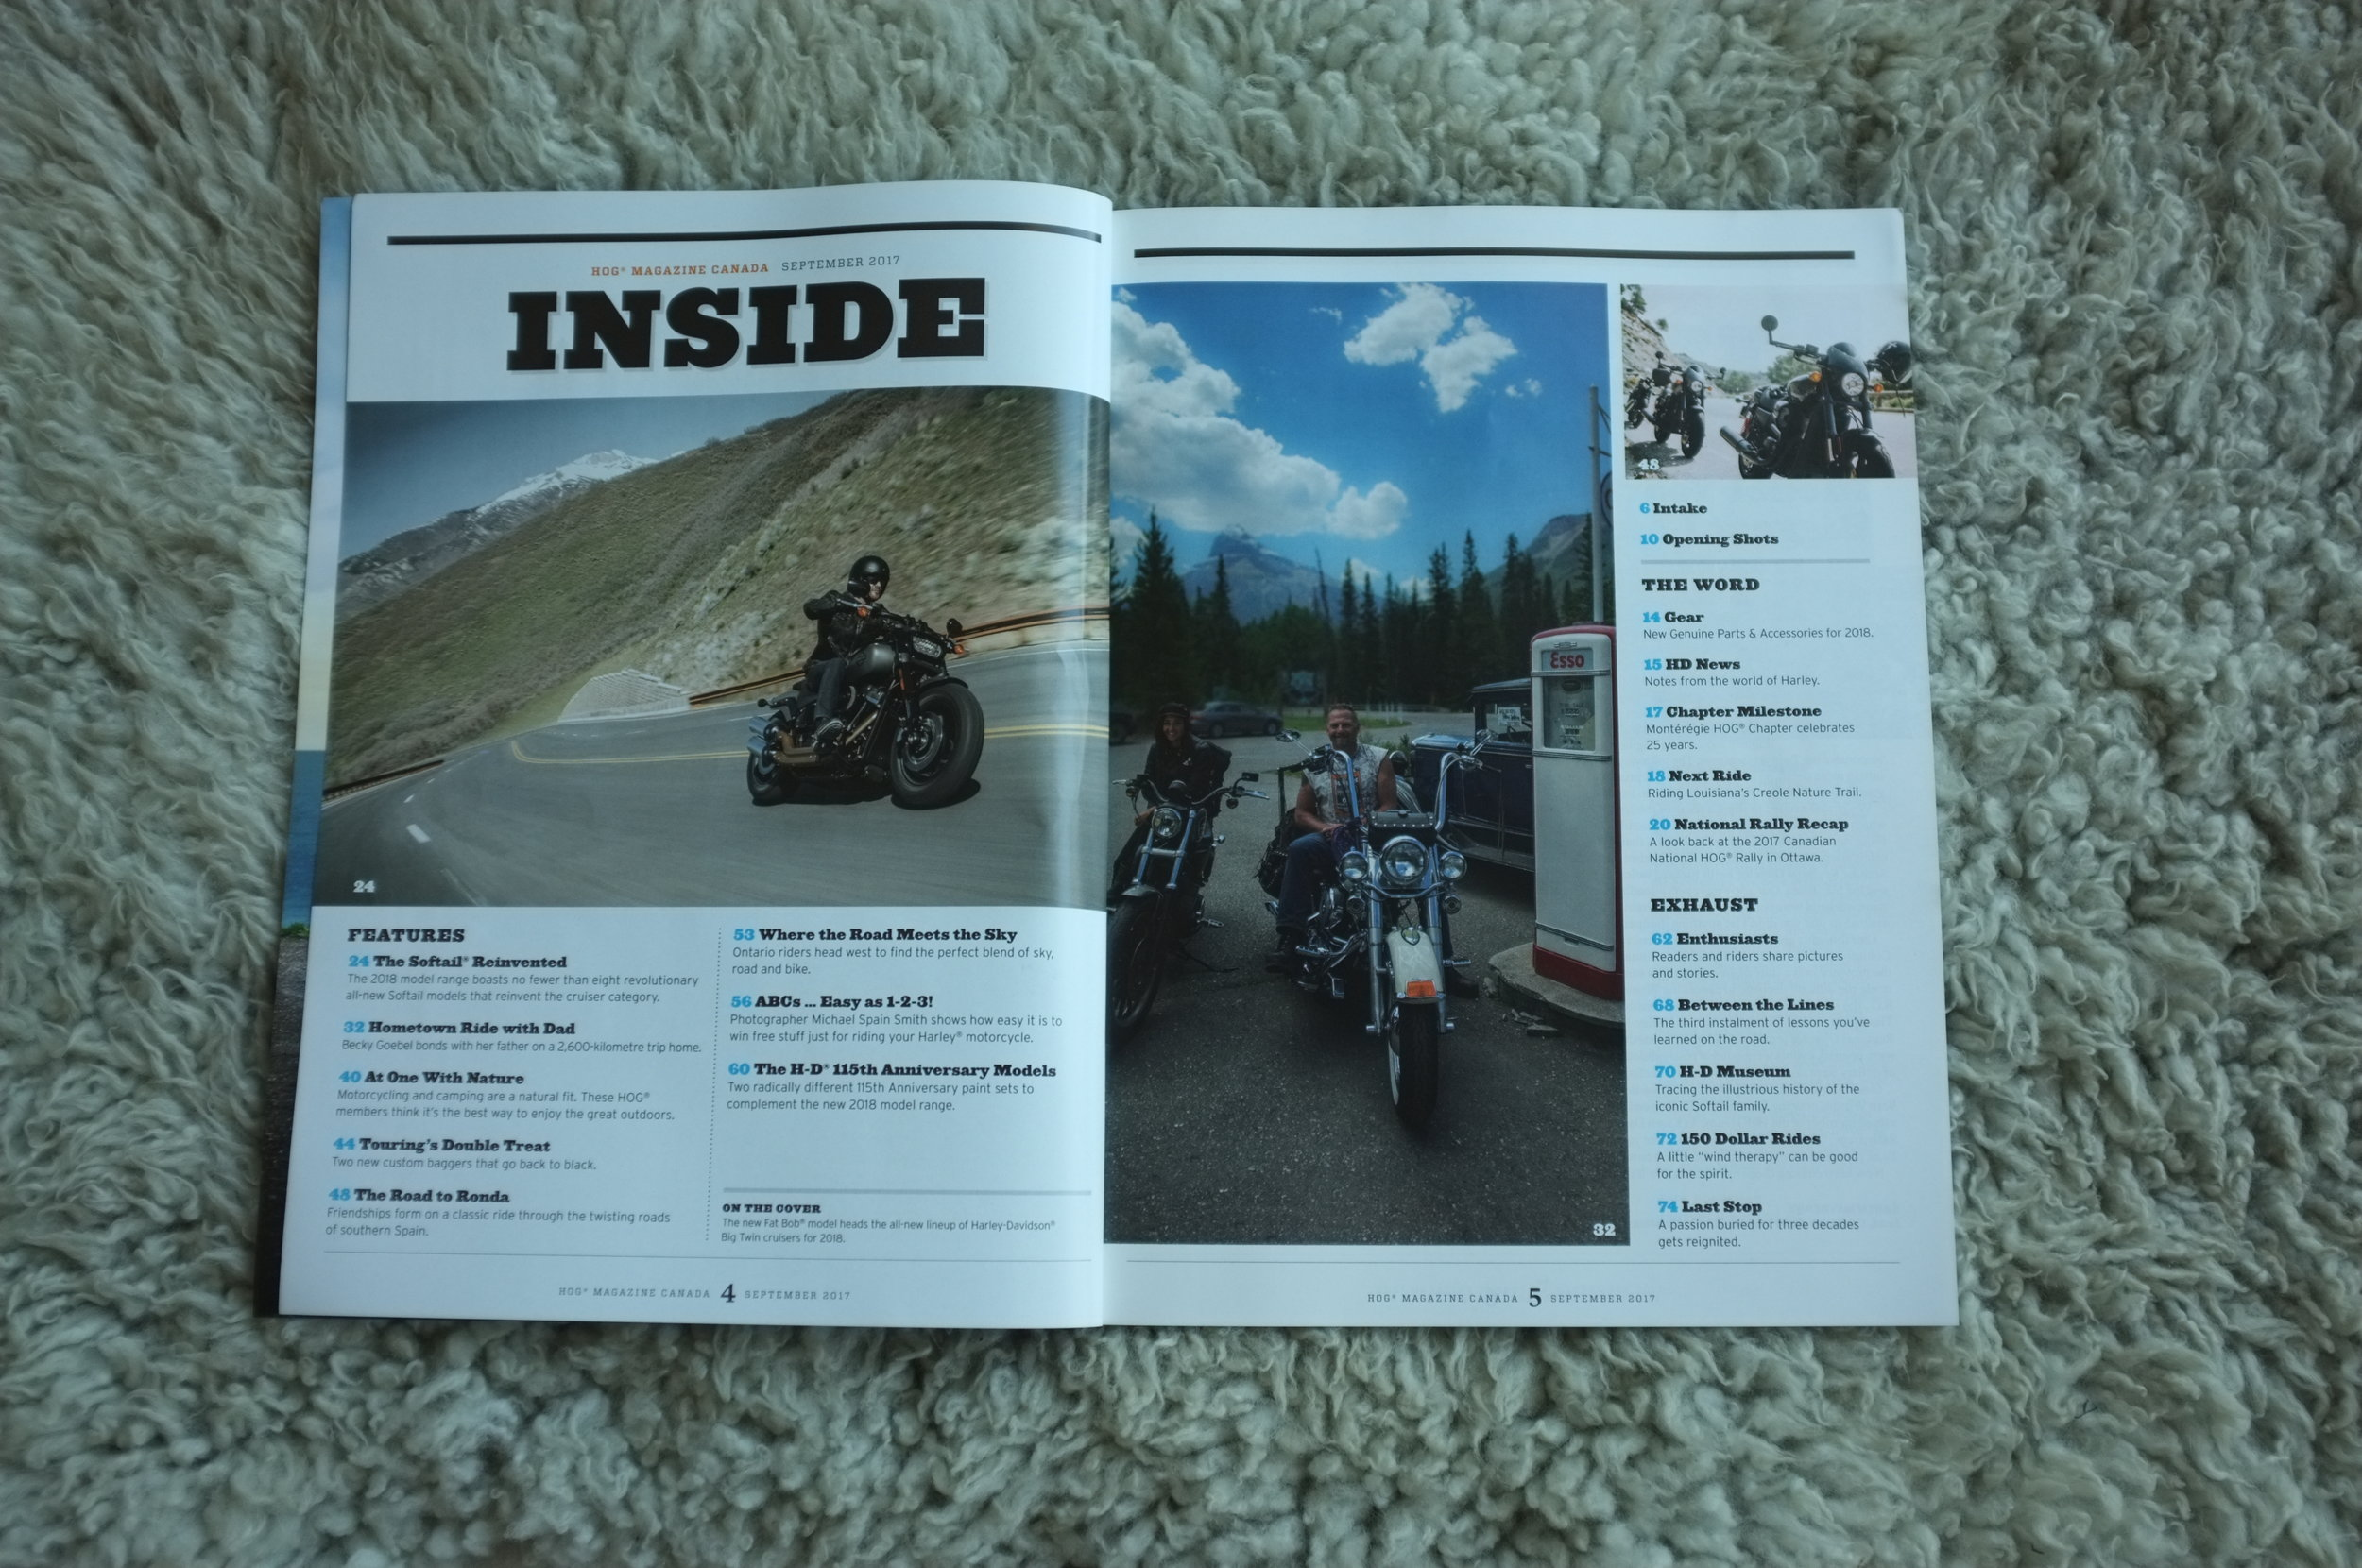 Contents Page of HOG Magazine, image of Becky & Mark Goebel